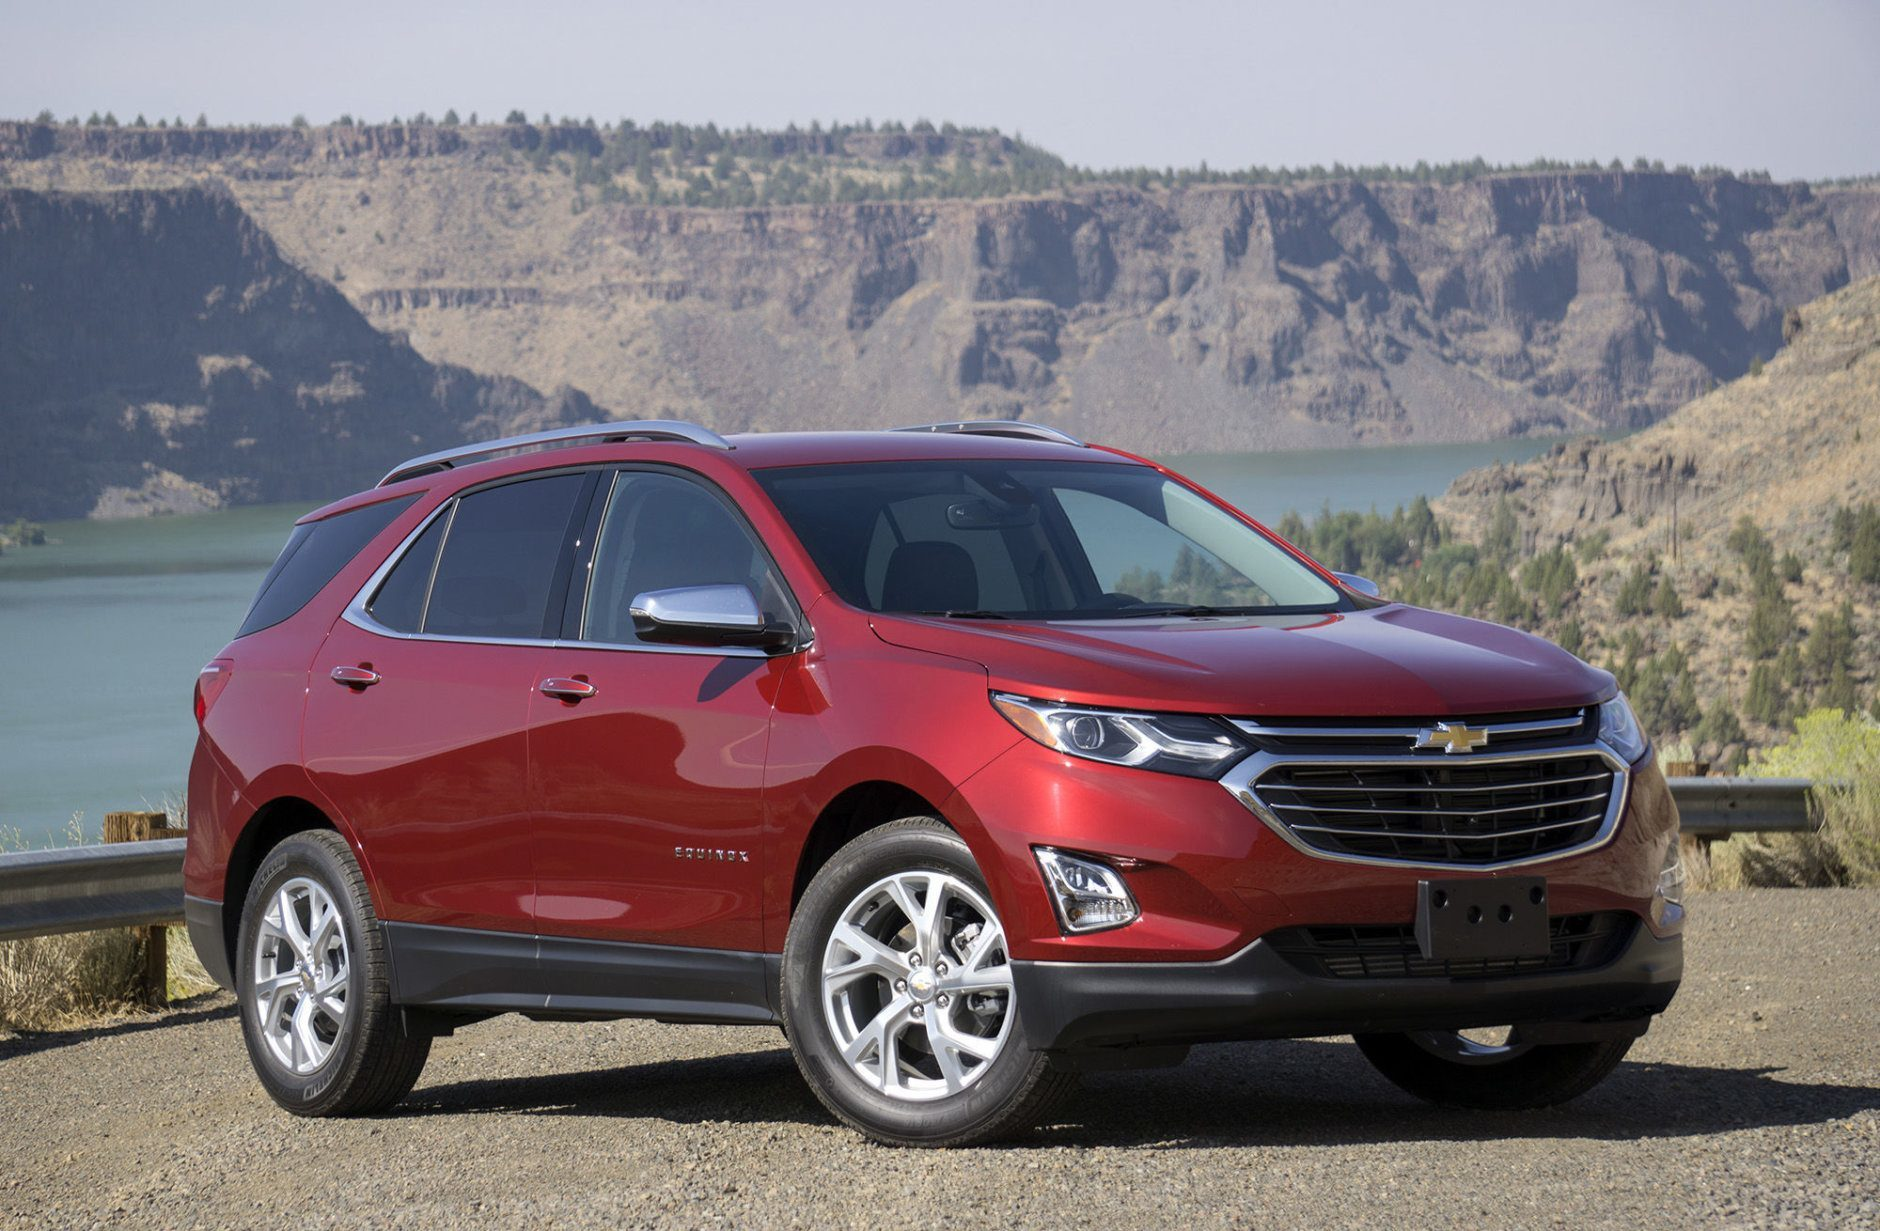 "<p>Chevrolet is offering 0% financing for 60 months on the <a href=""https://cars.usnews.com/cars-trucks/chevrolet/equinox?utm_source=press&amp;utm_medium=releaselinks&amp;utm_campaign=deals"" target=""_blank"" rel=""noopener"">2019 Chevrolet Equinox.</a></p> <p>&nbsp;</p>"